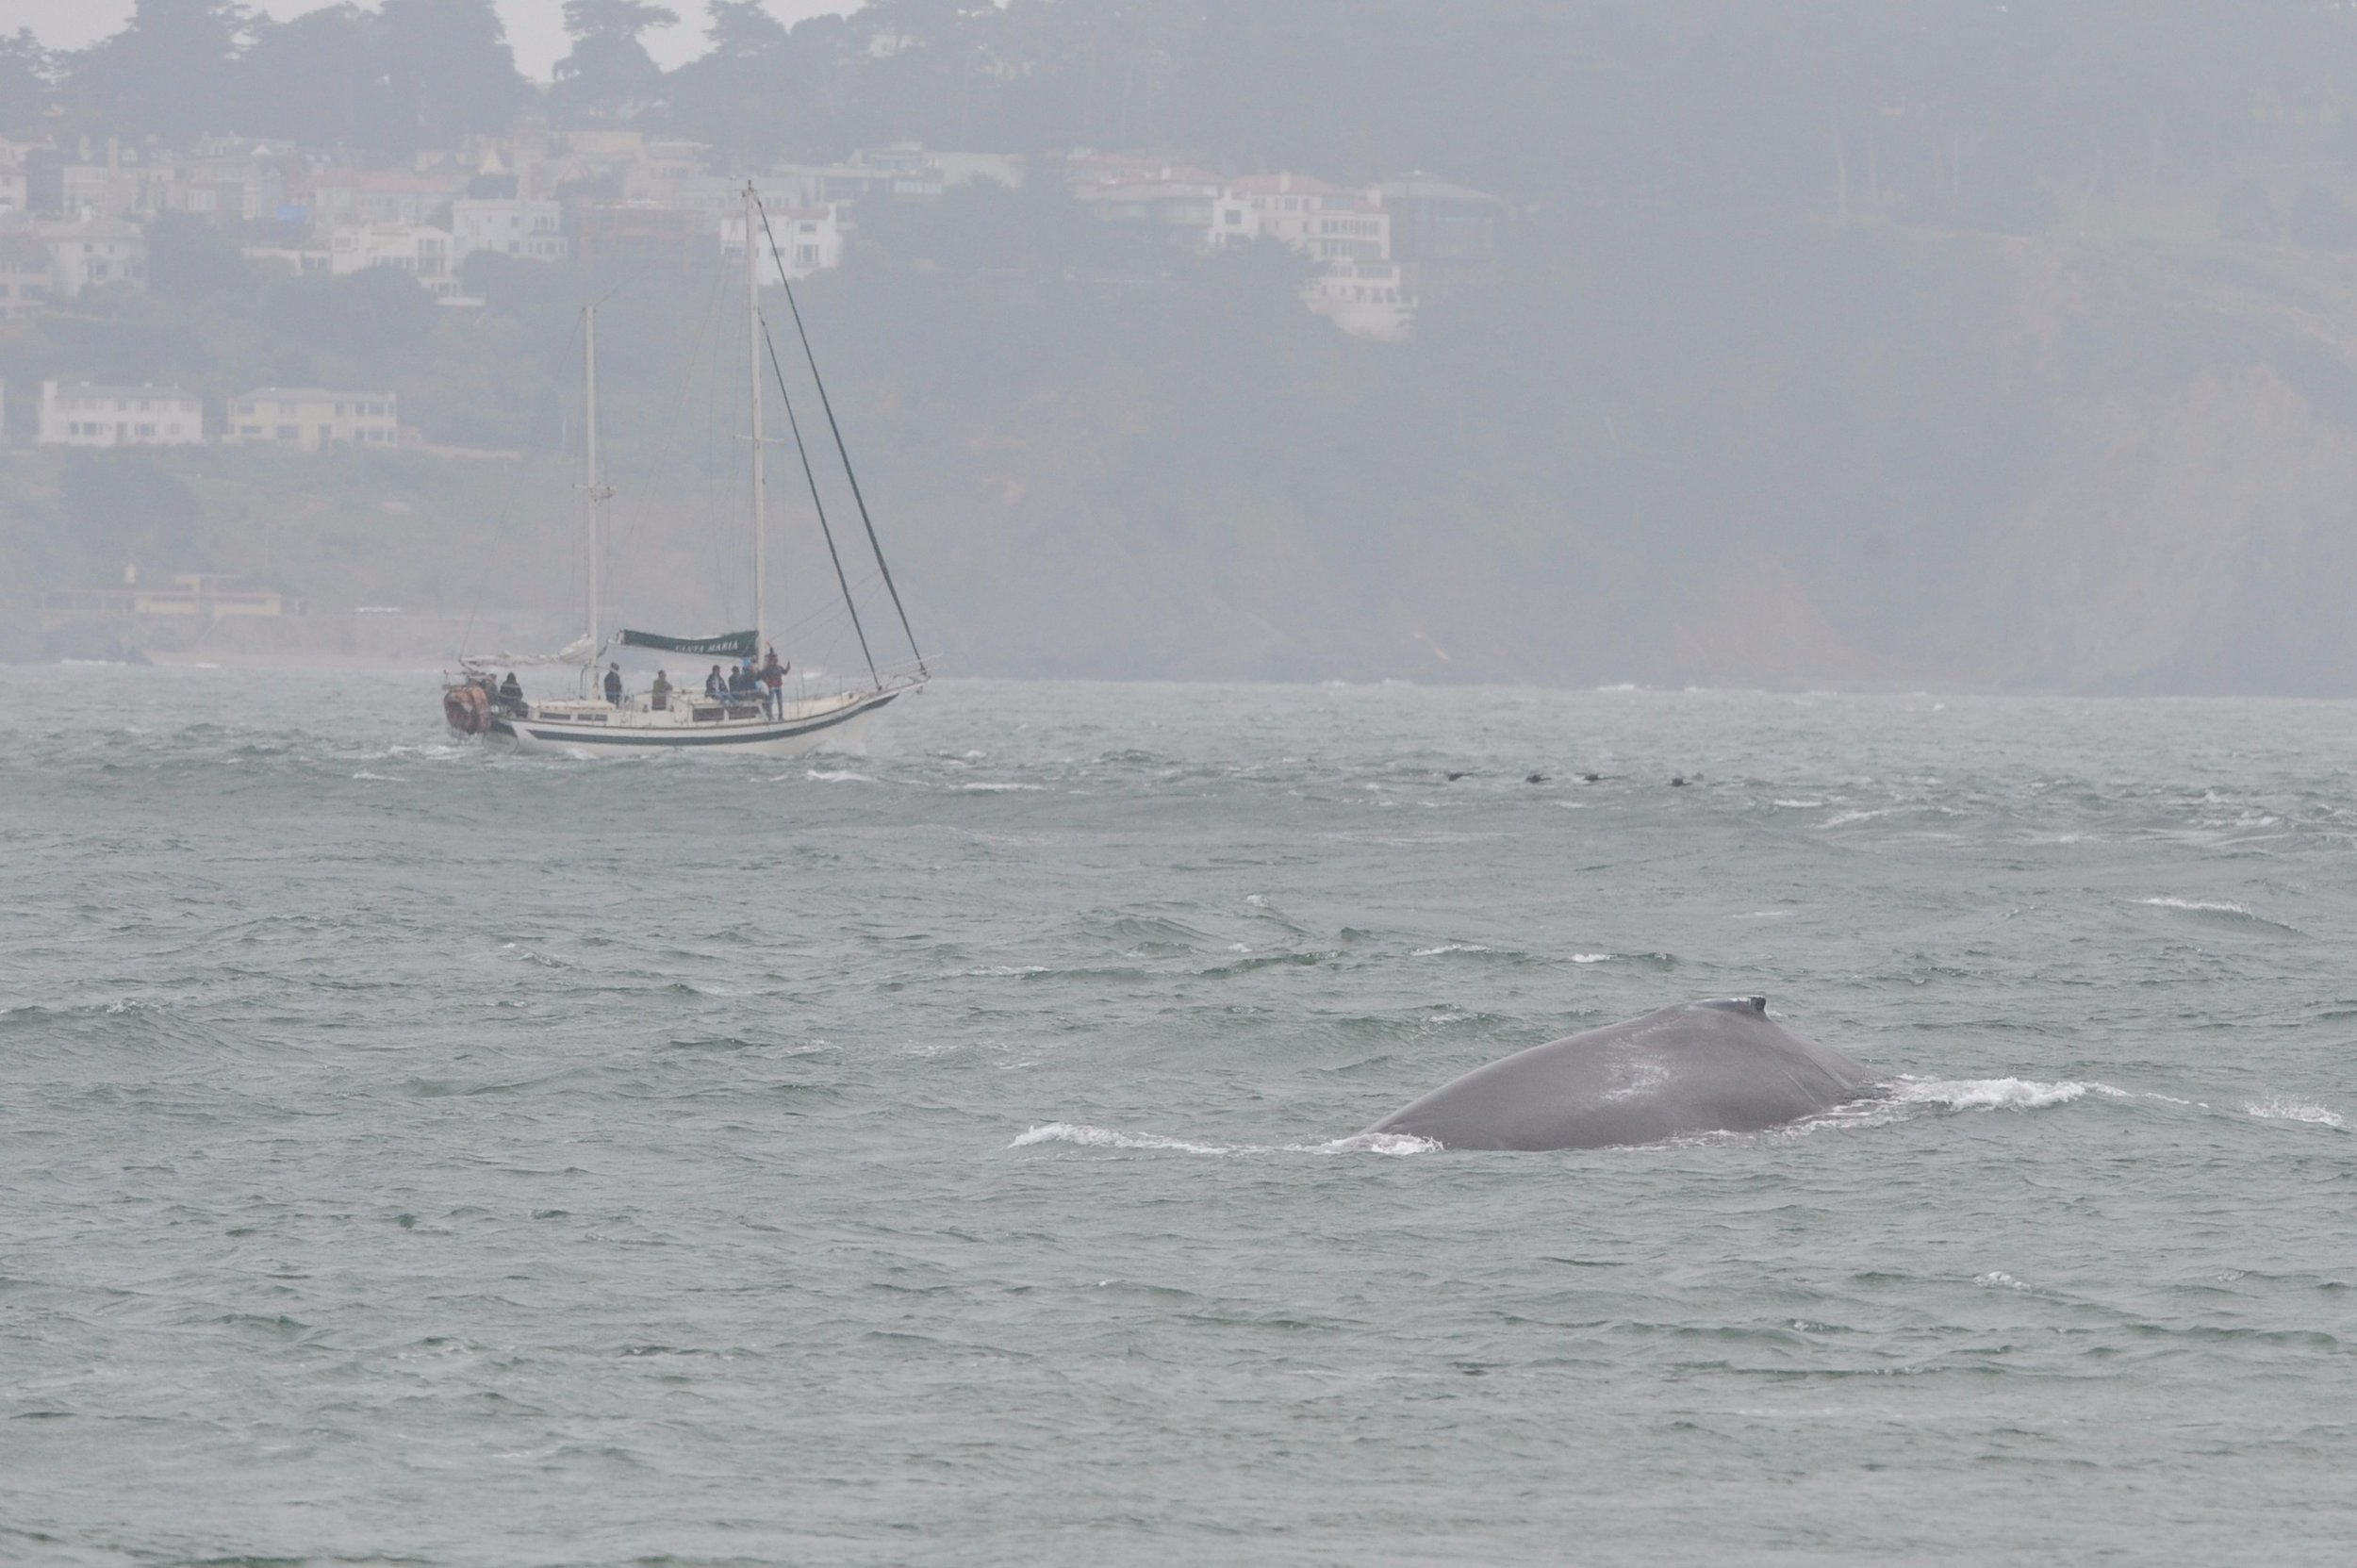 Humpback near a sailboat.